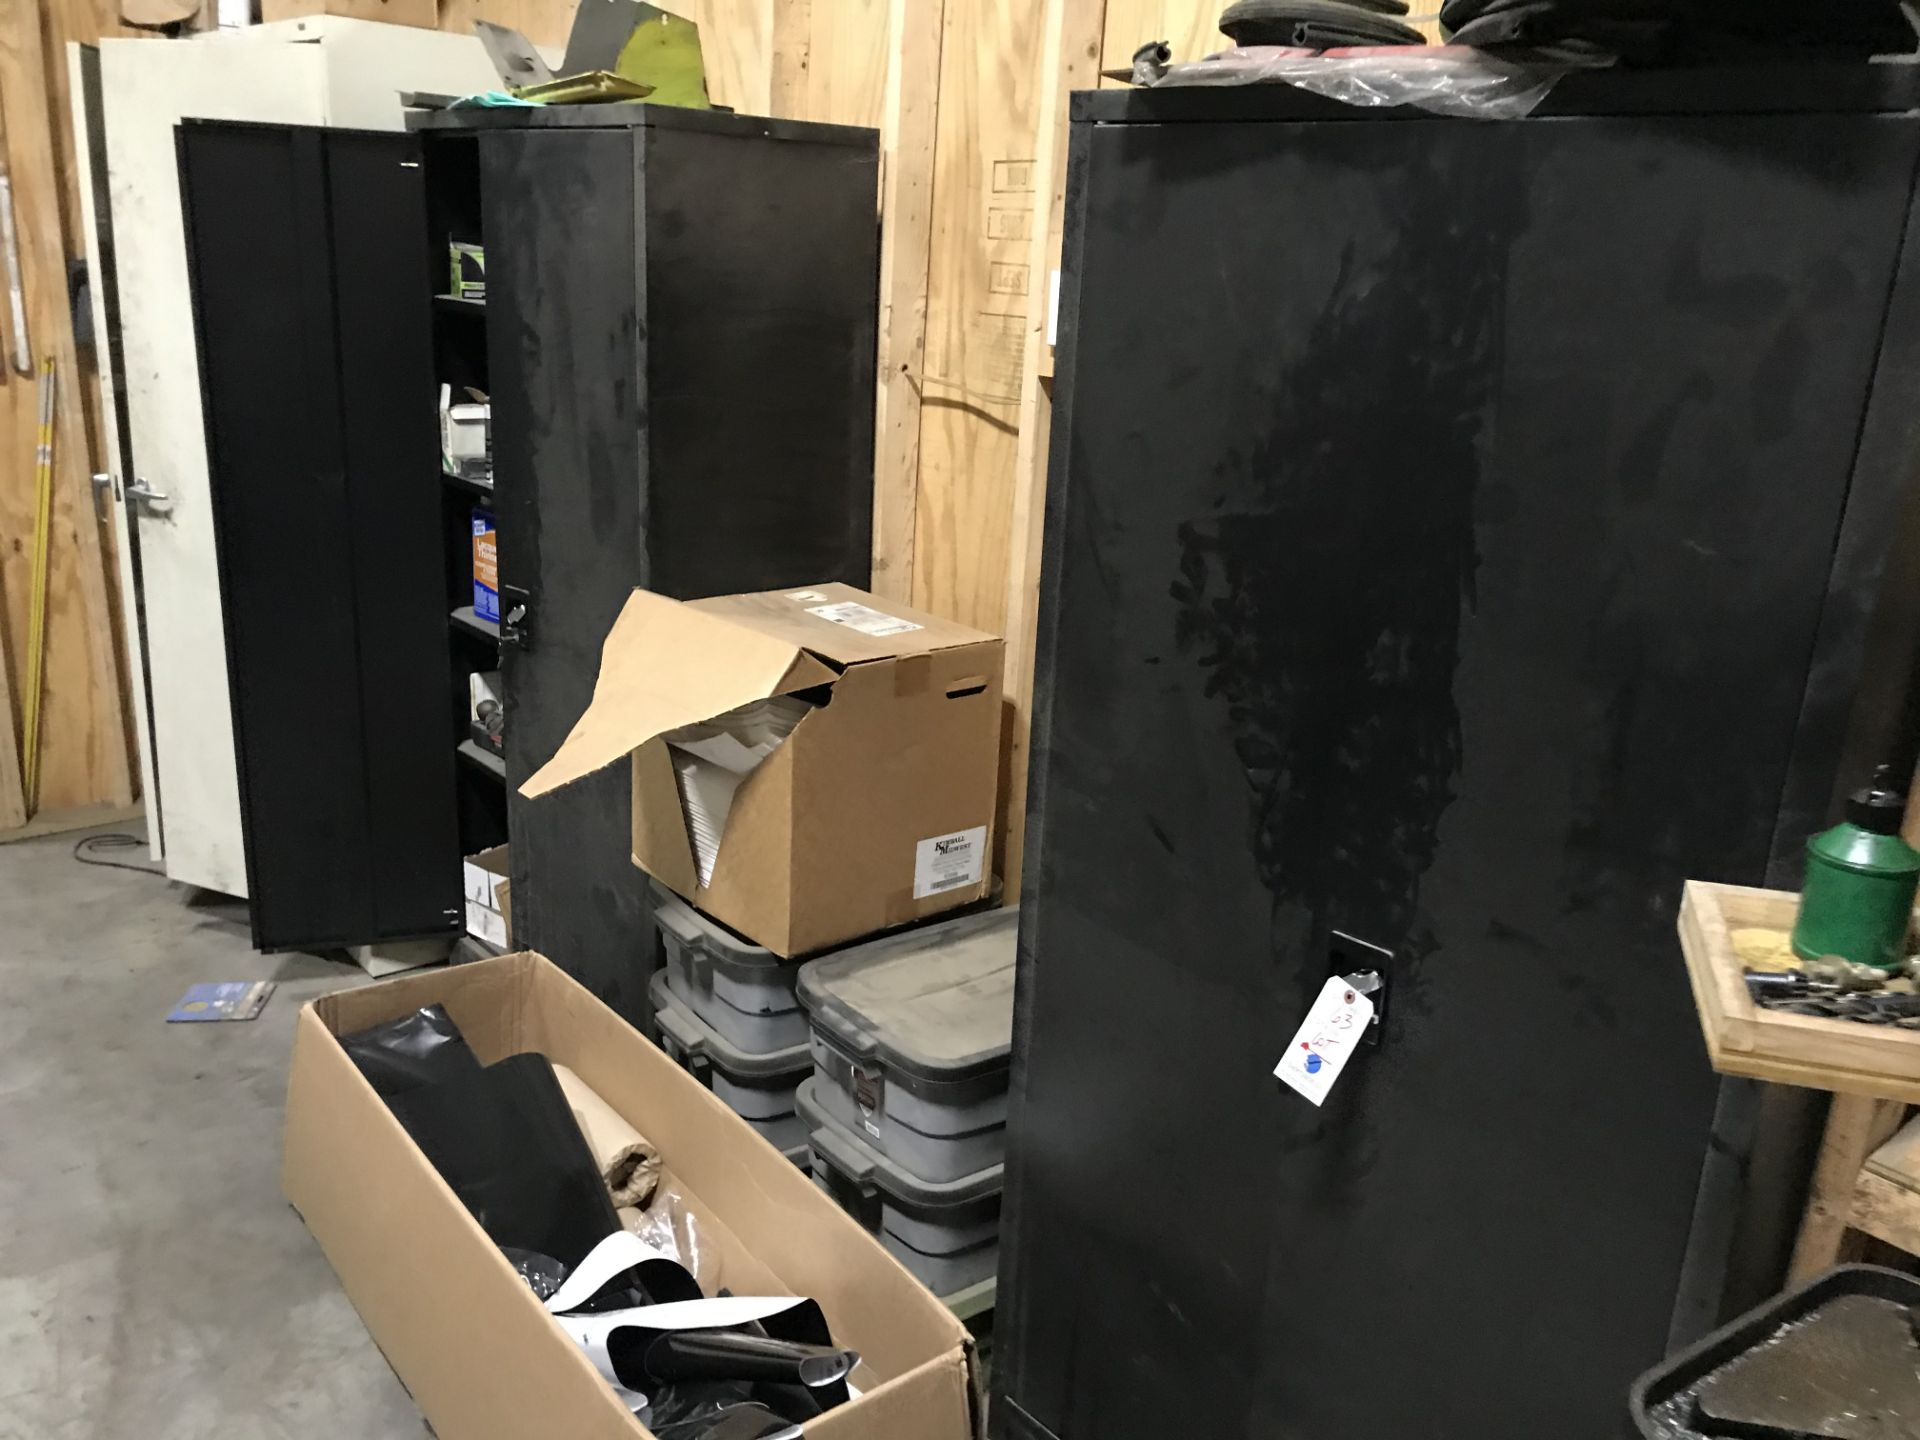 Lot 63 - {LOT} 3 Cabinets w/Contents & Misc. Supplies